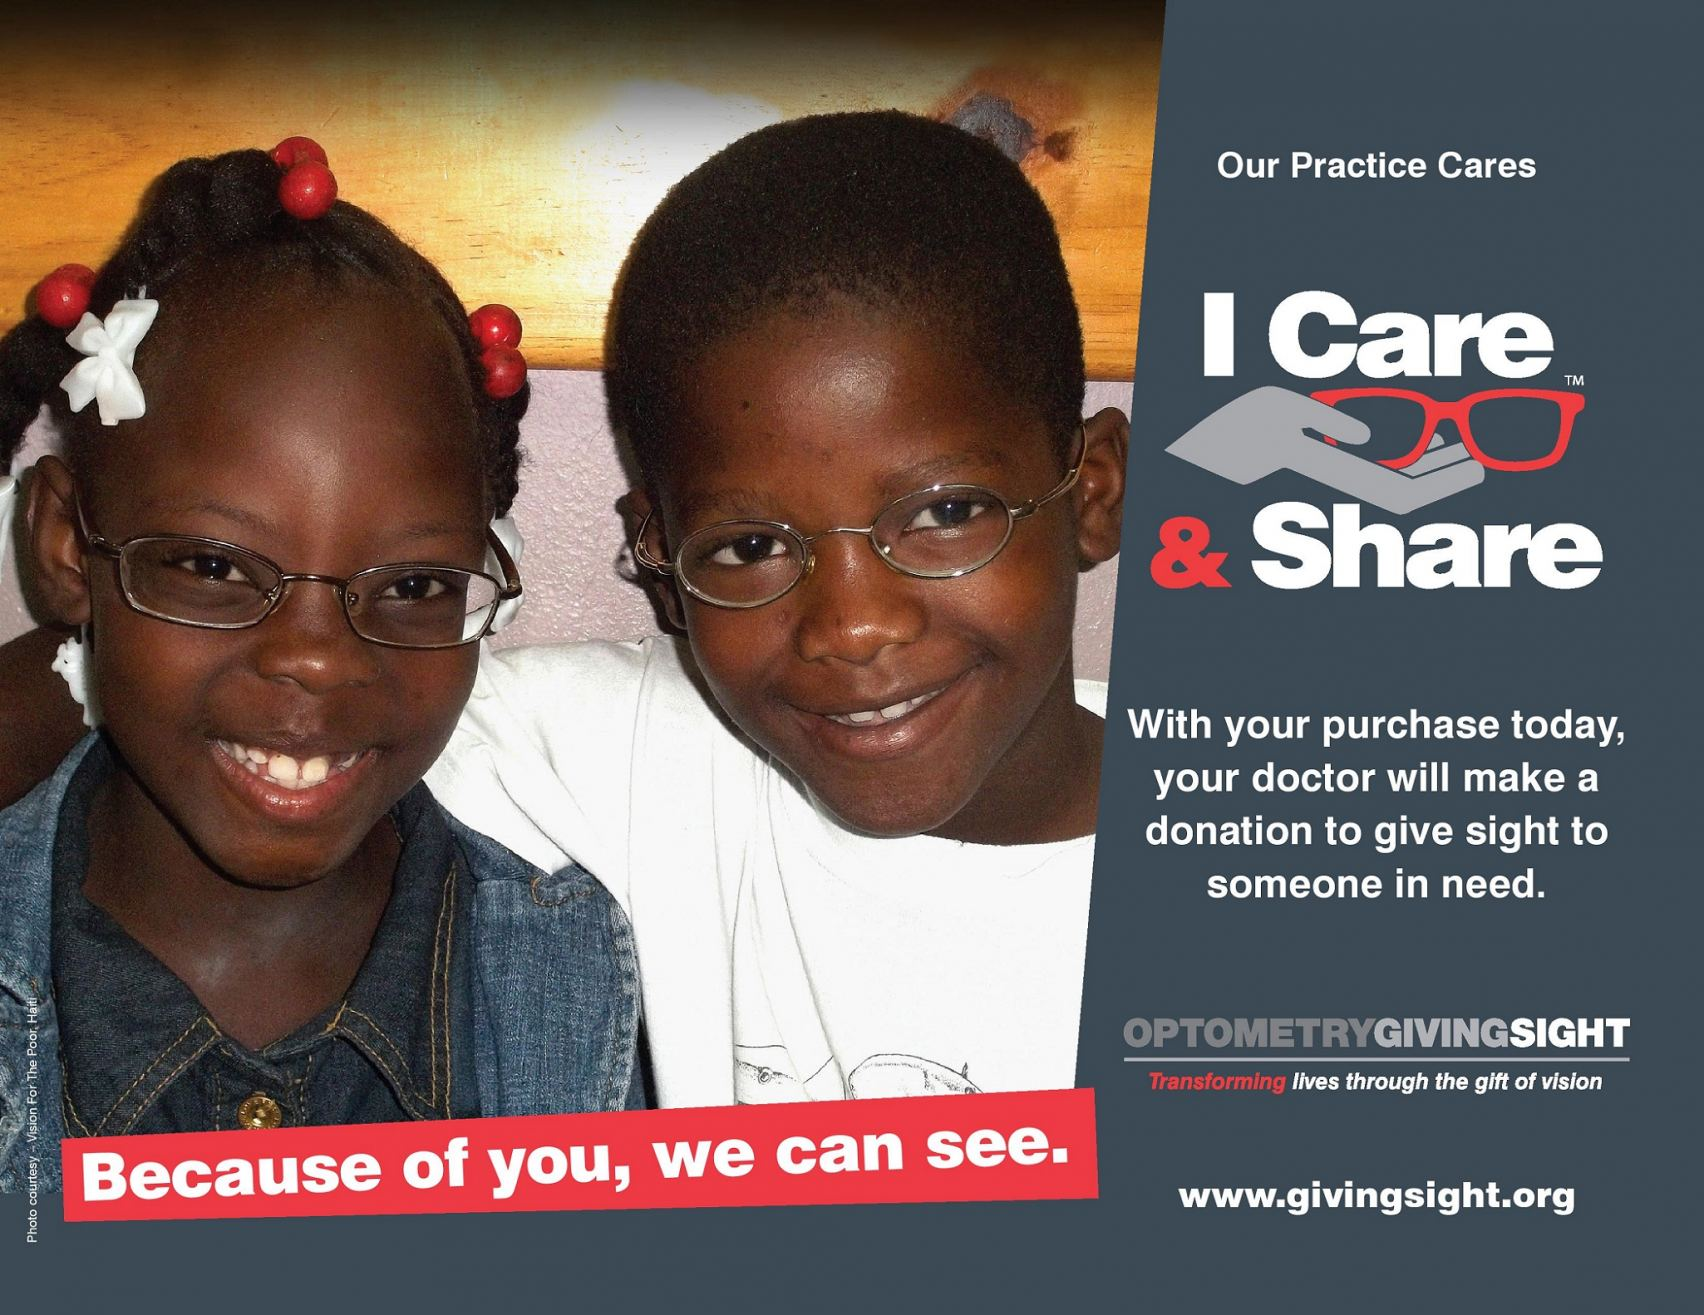 Linden Optometry, P.C. Giving the Gift of Sight Around the World